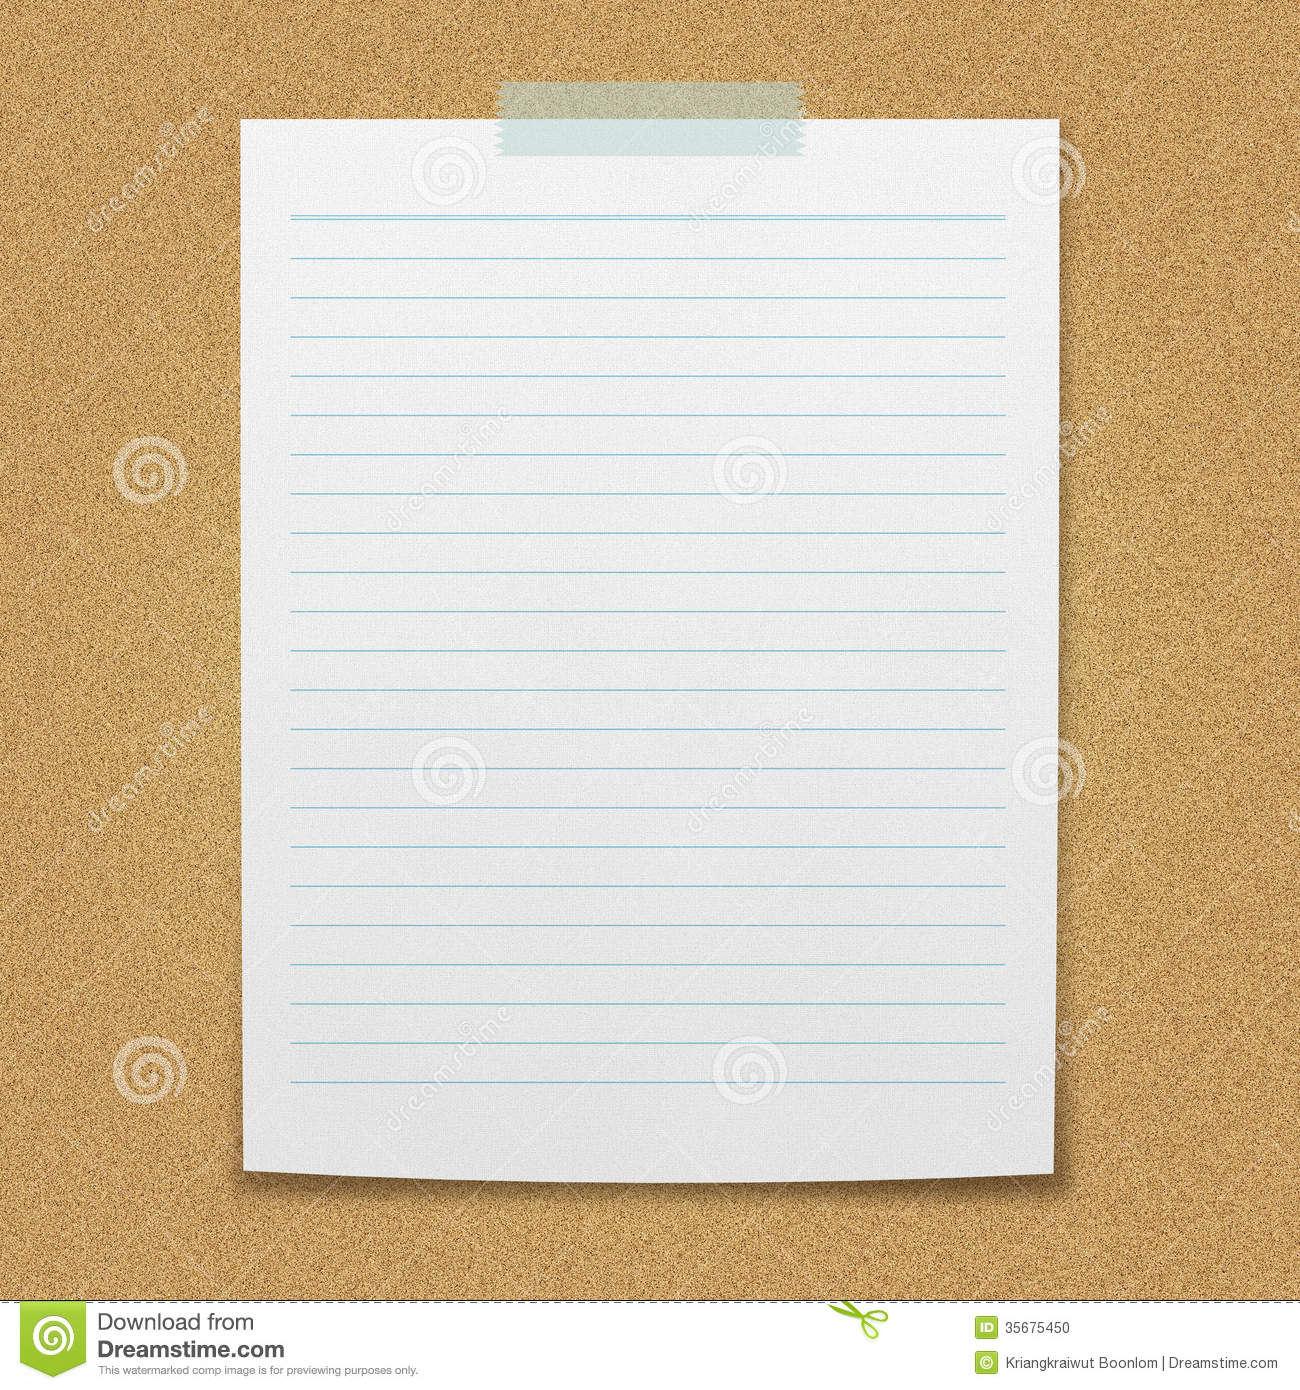 blank piece of paper to write on the computer Imagine explaining your leadership philosophy on one piece of paper - a simple 85 x 11 summation of all you are and all you want to be as a leader.